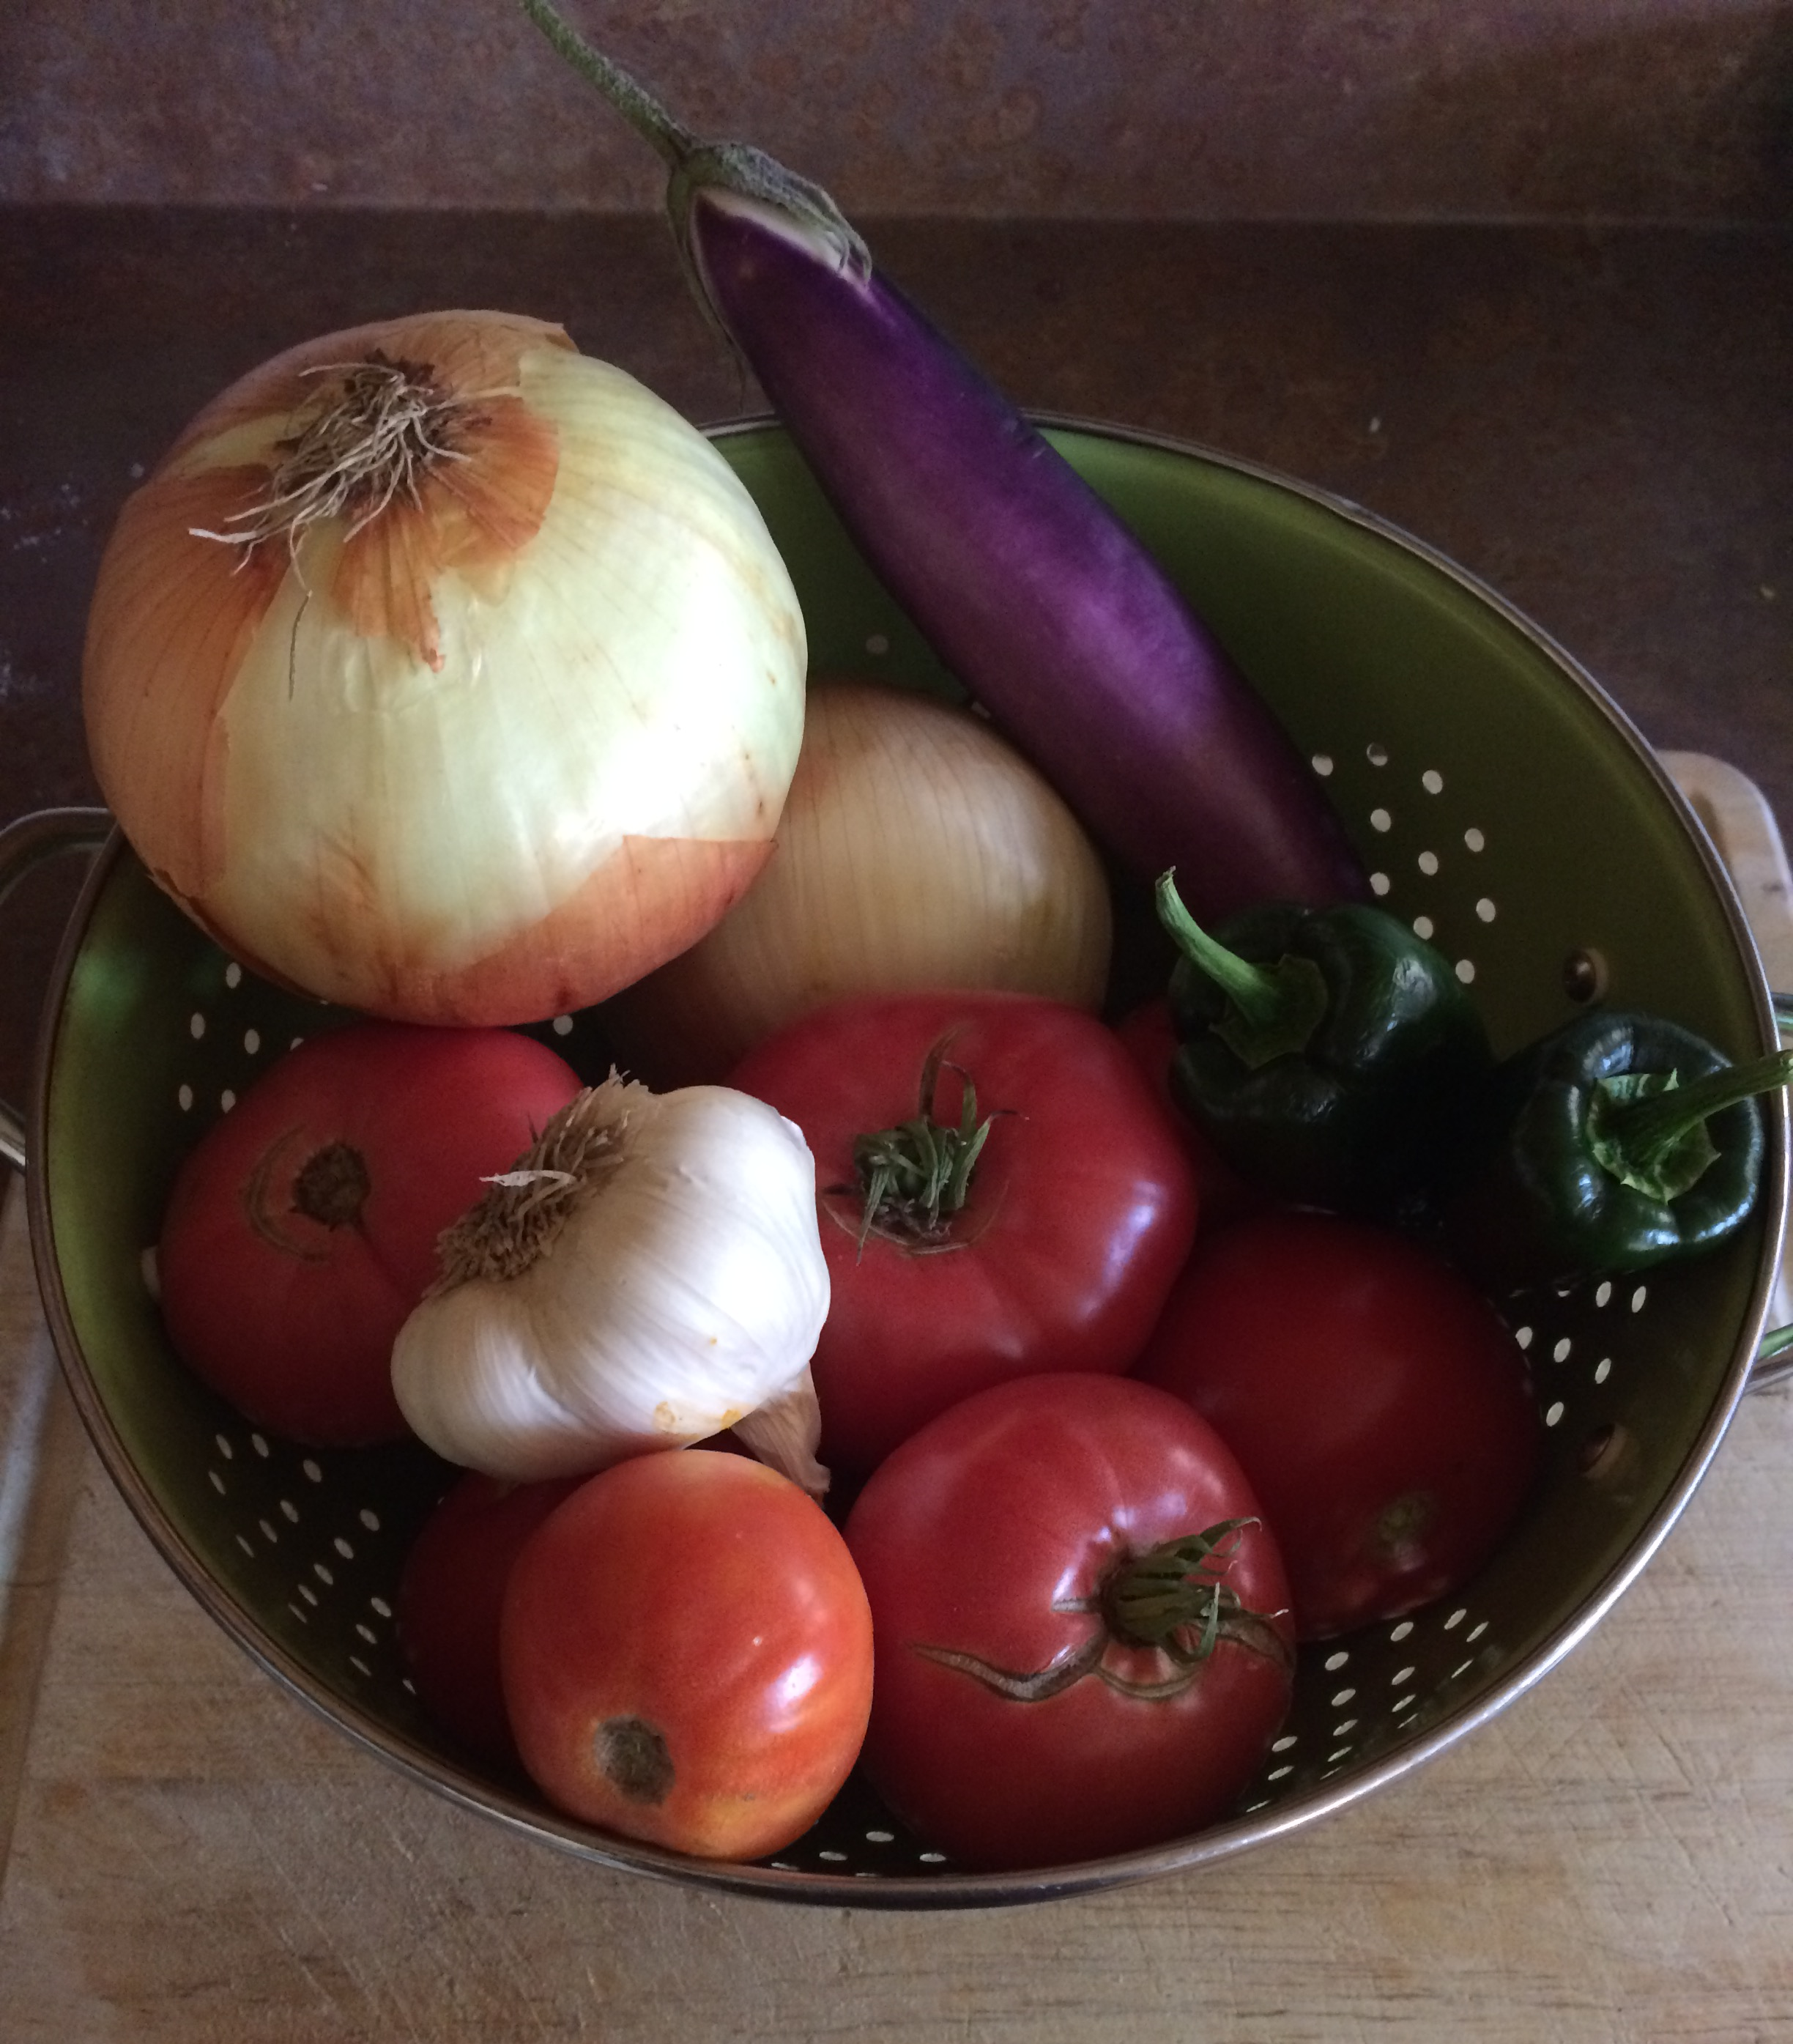 This harvest included eggplant and green peppers